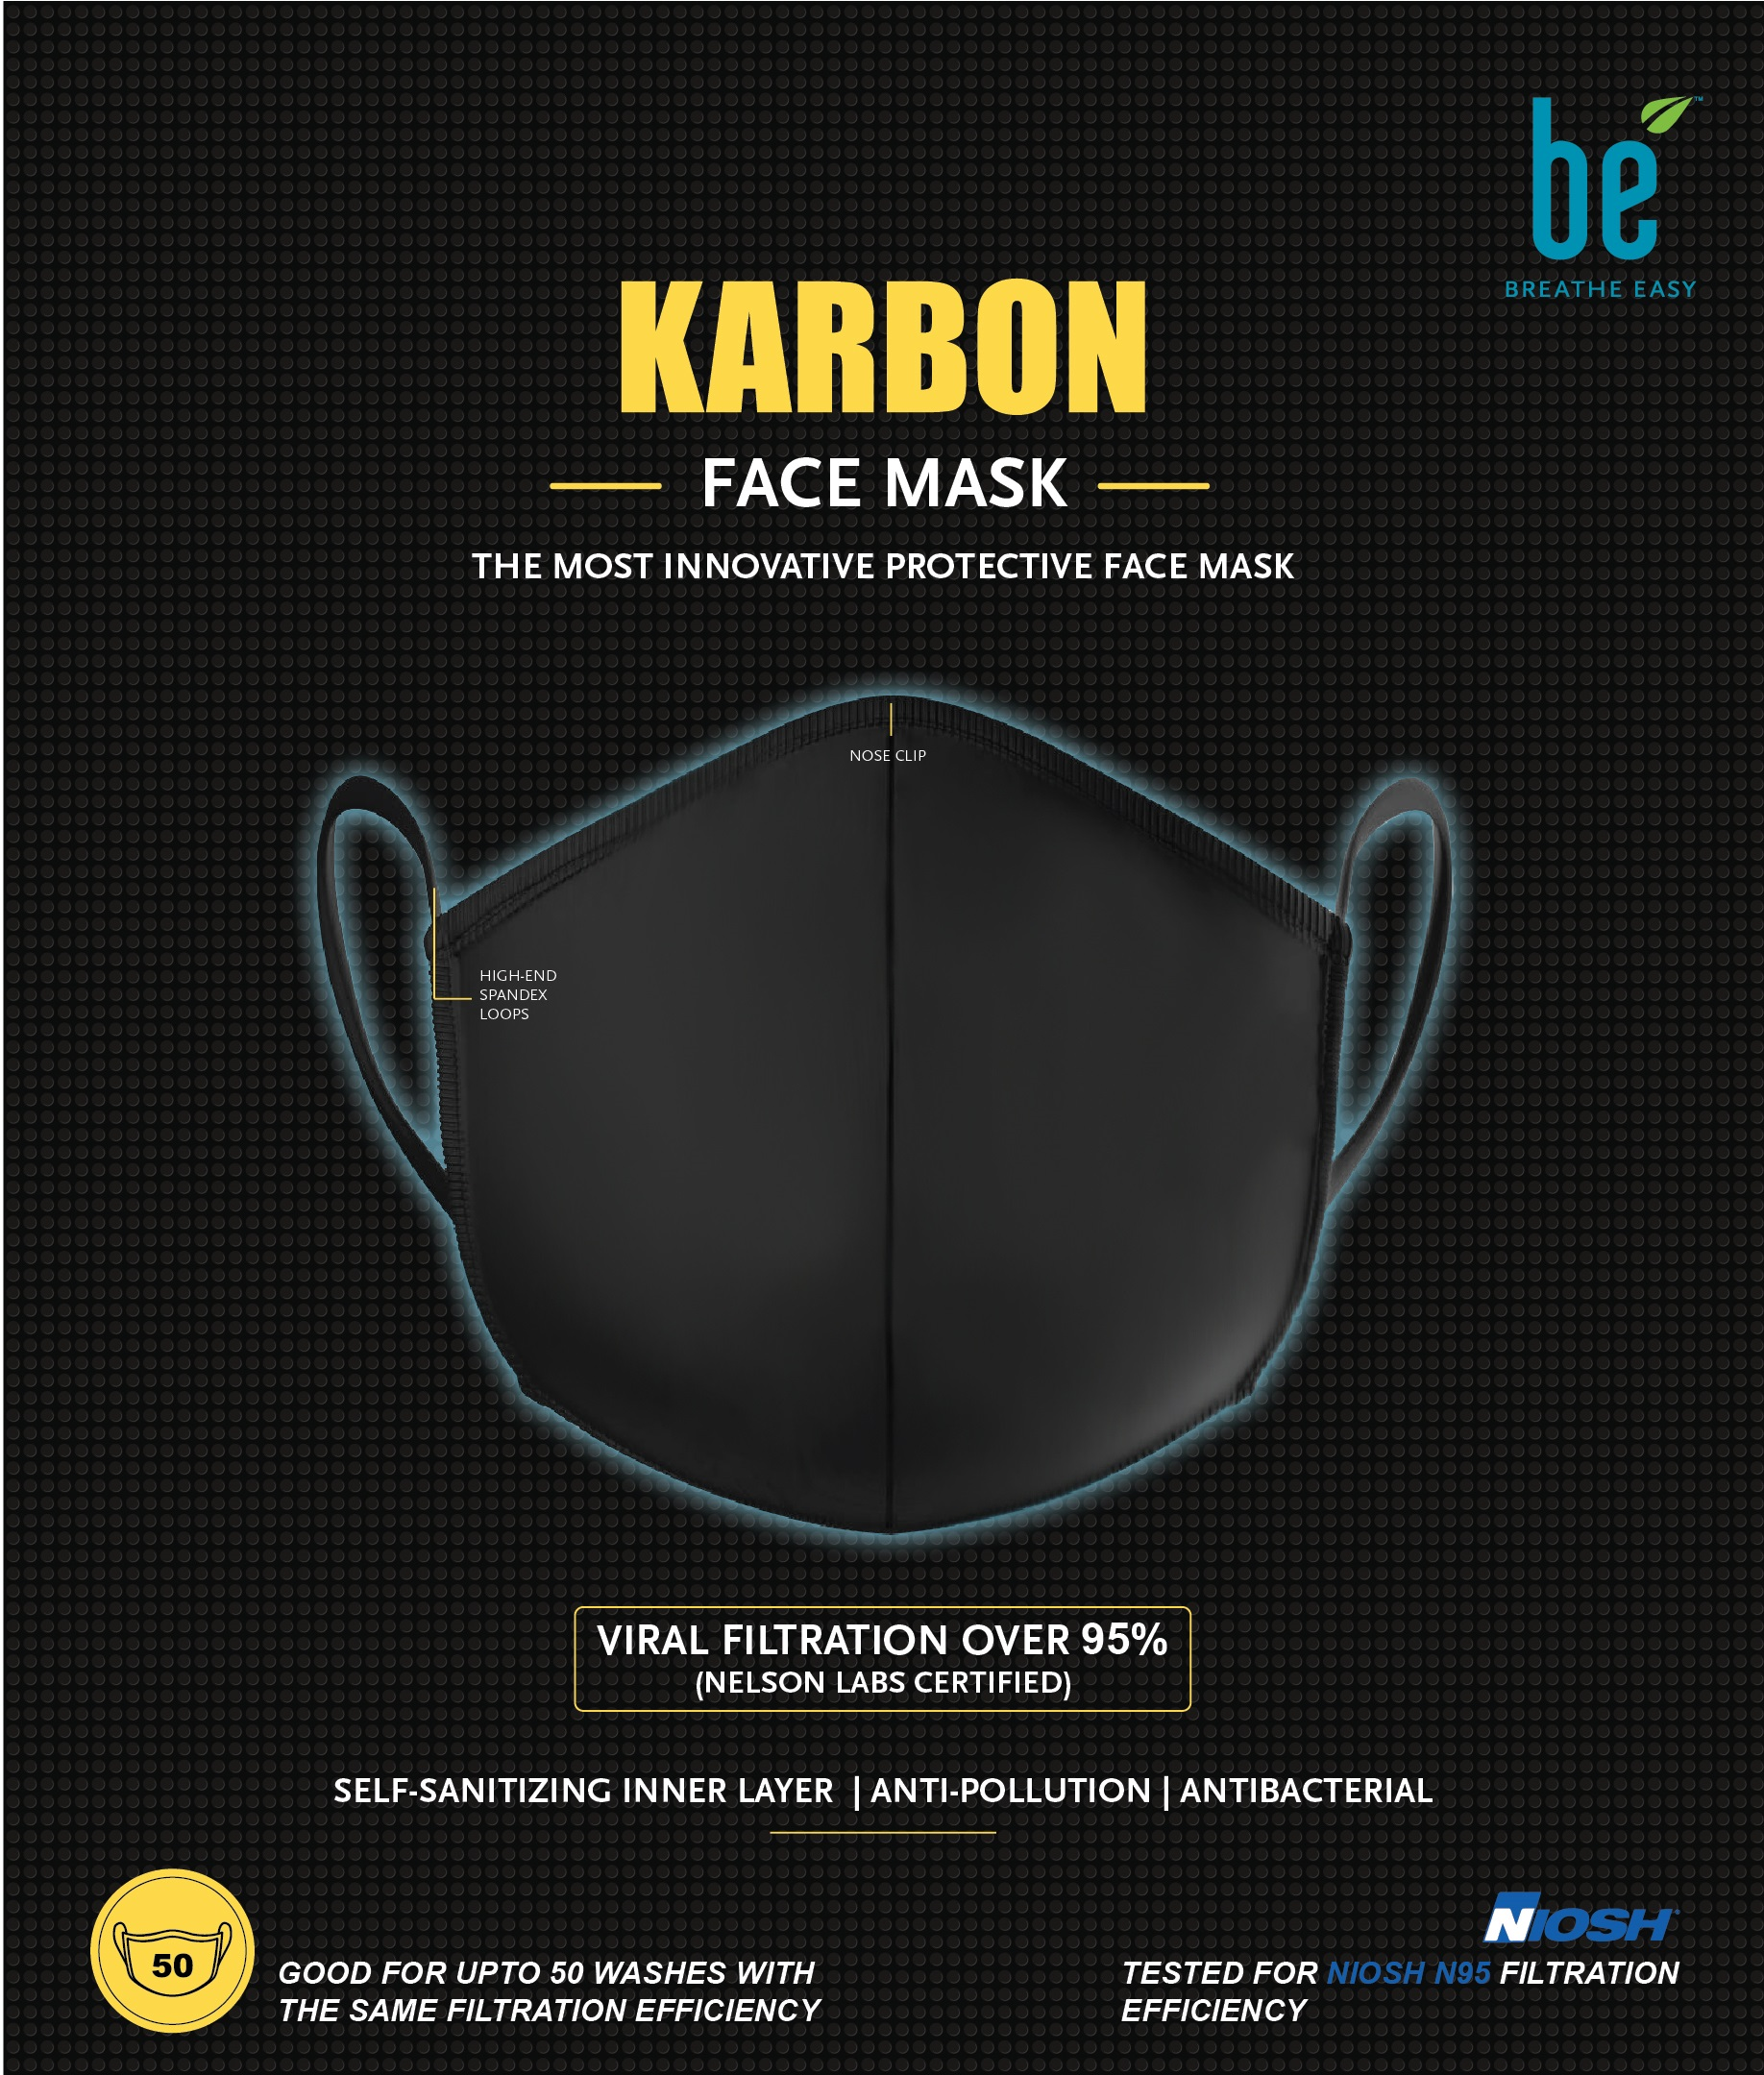 BreatheEasy launches the Unique Self-Sanitising KARBON Face Mask